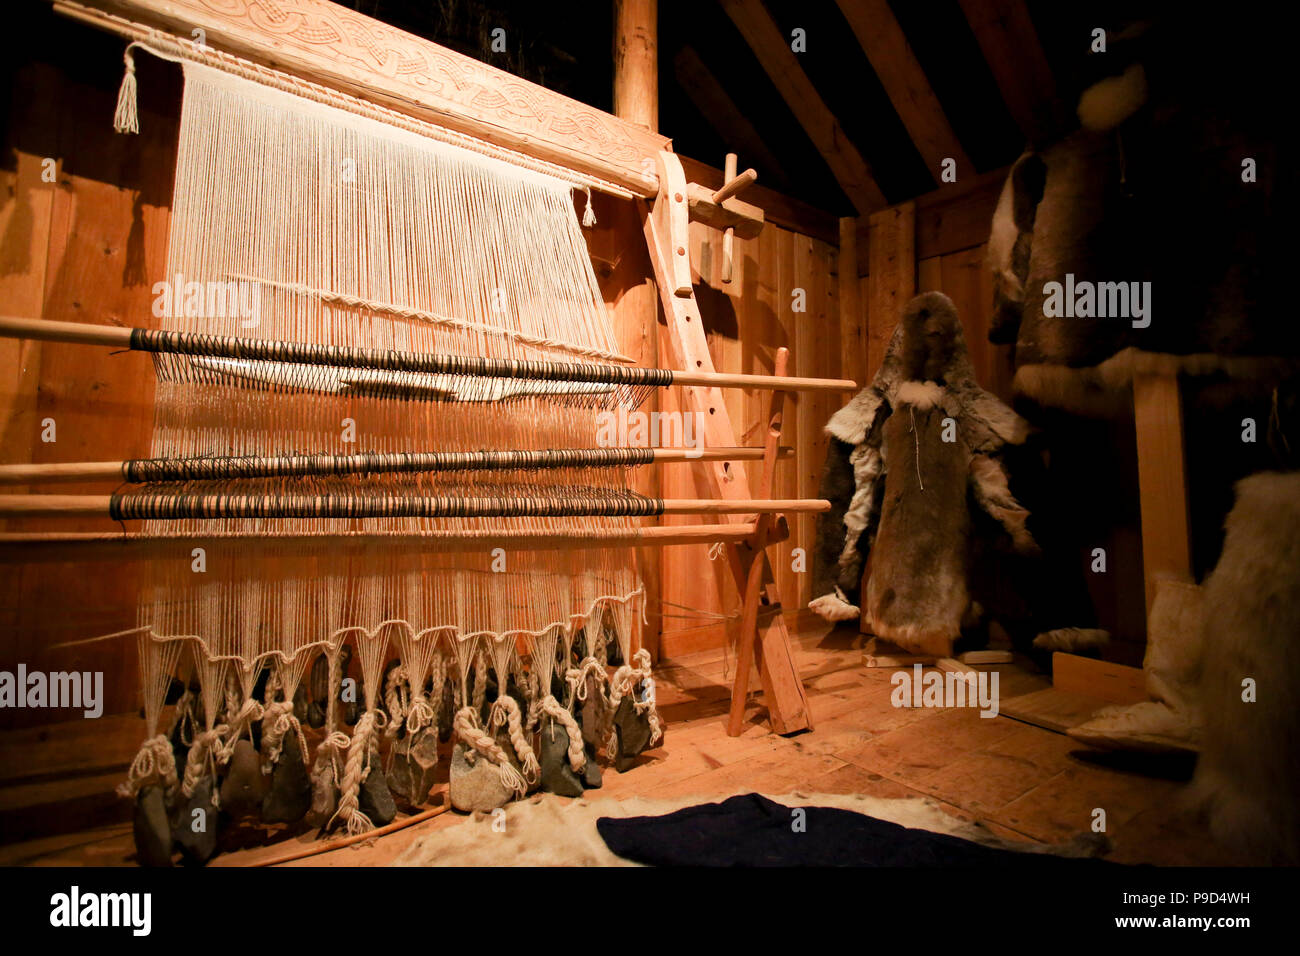 Greenland, Tunulliarfik, Qassiarsuk. Recreated Norse style loom from Erik the Red's Brattahlid estate. - Stock Image